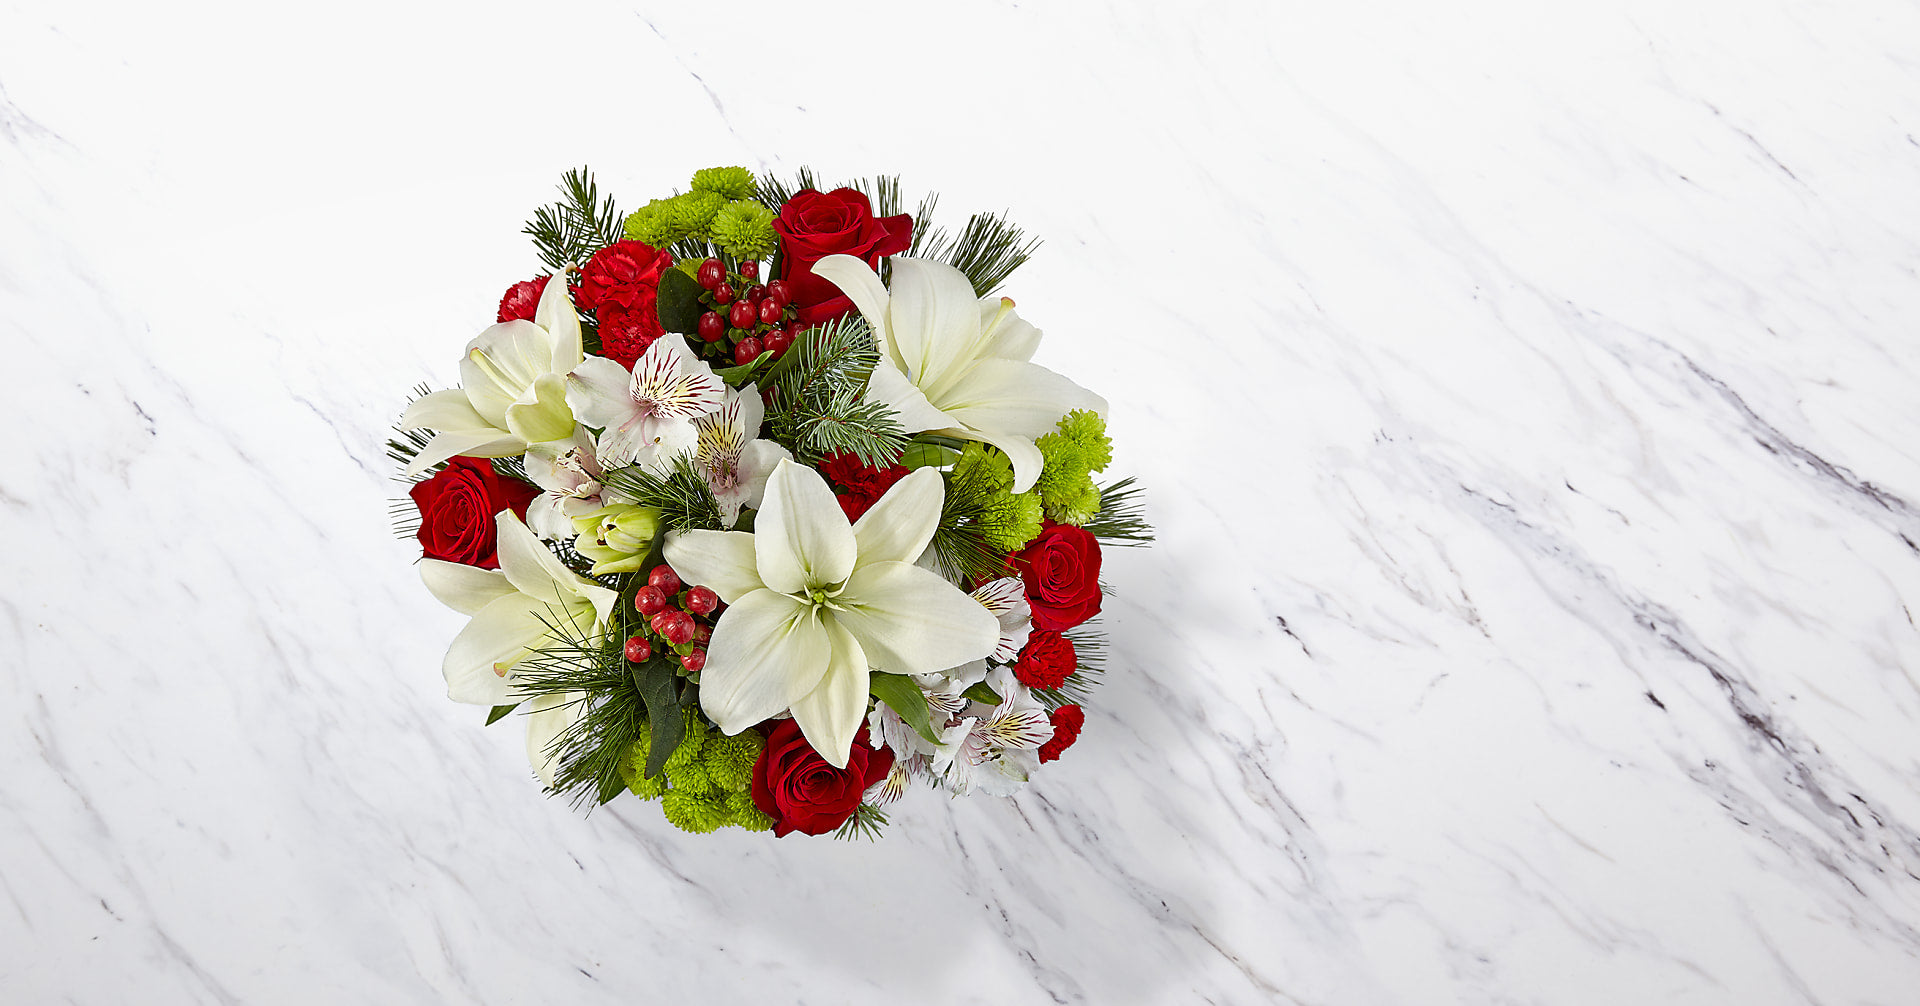 Christmas Spirit Bouquet - Image 2 Of 4